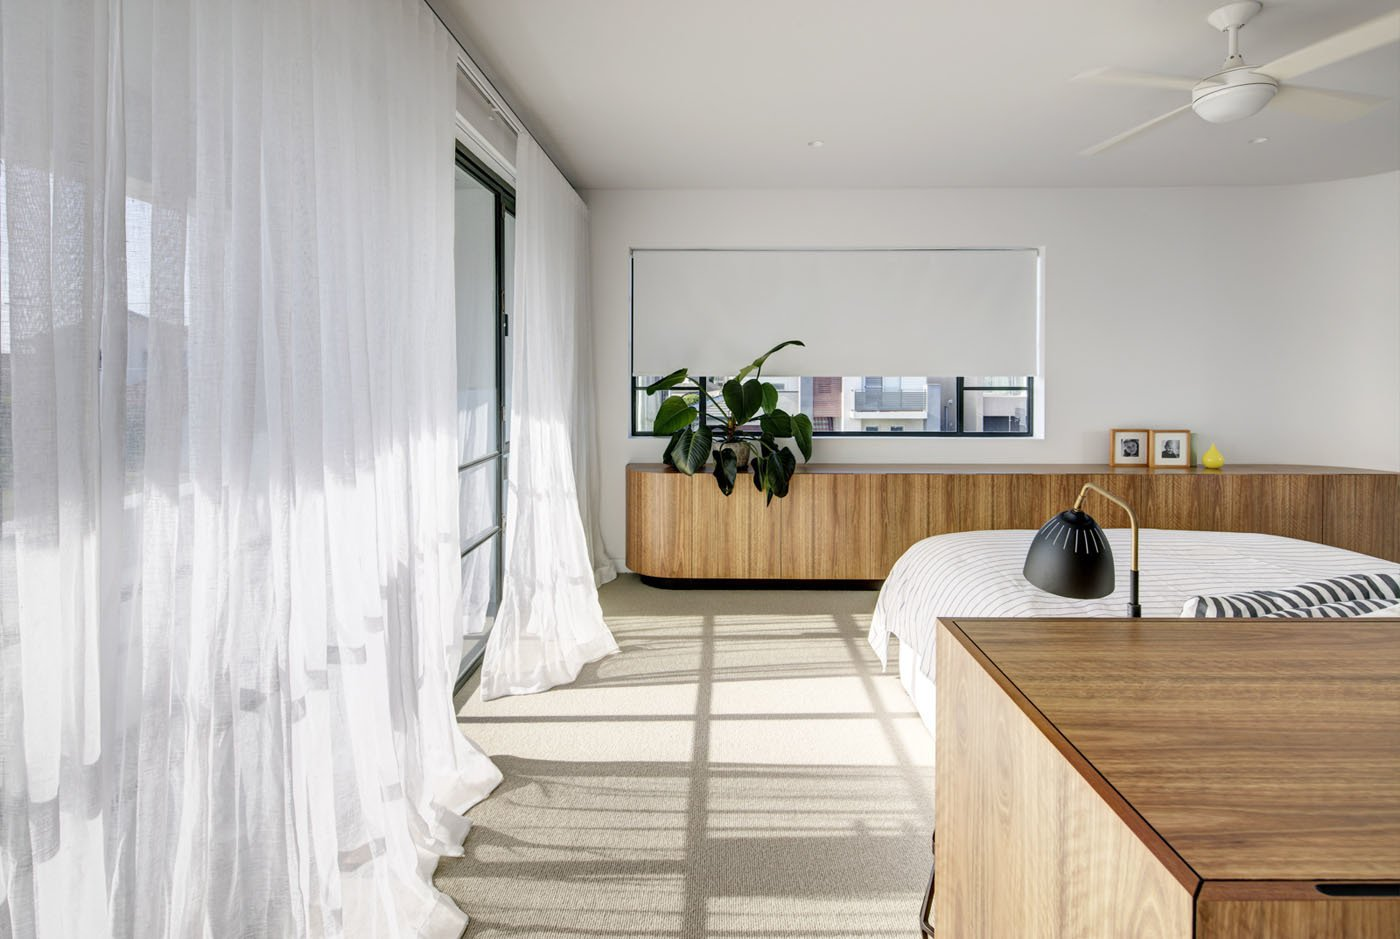 Bedroom, Storage, Bed, and Carpet Floor  Photo 9 of 11 in A Heritage Art Deco House in Australia Gets a Modern Update